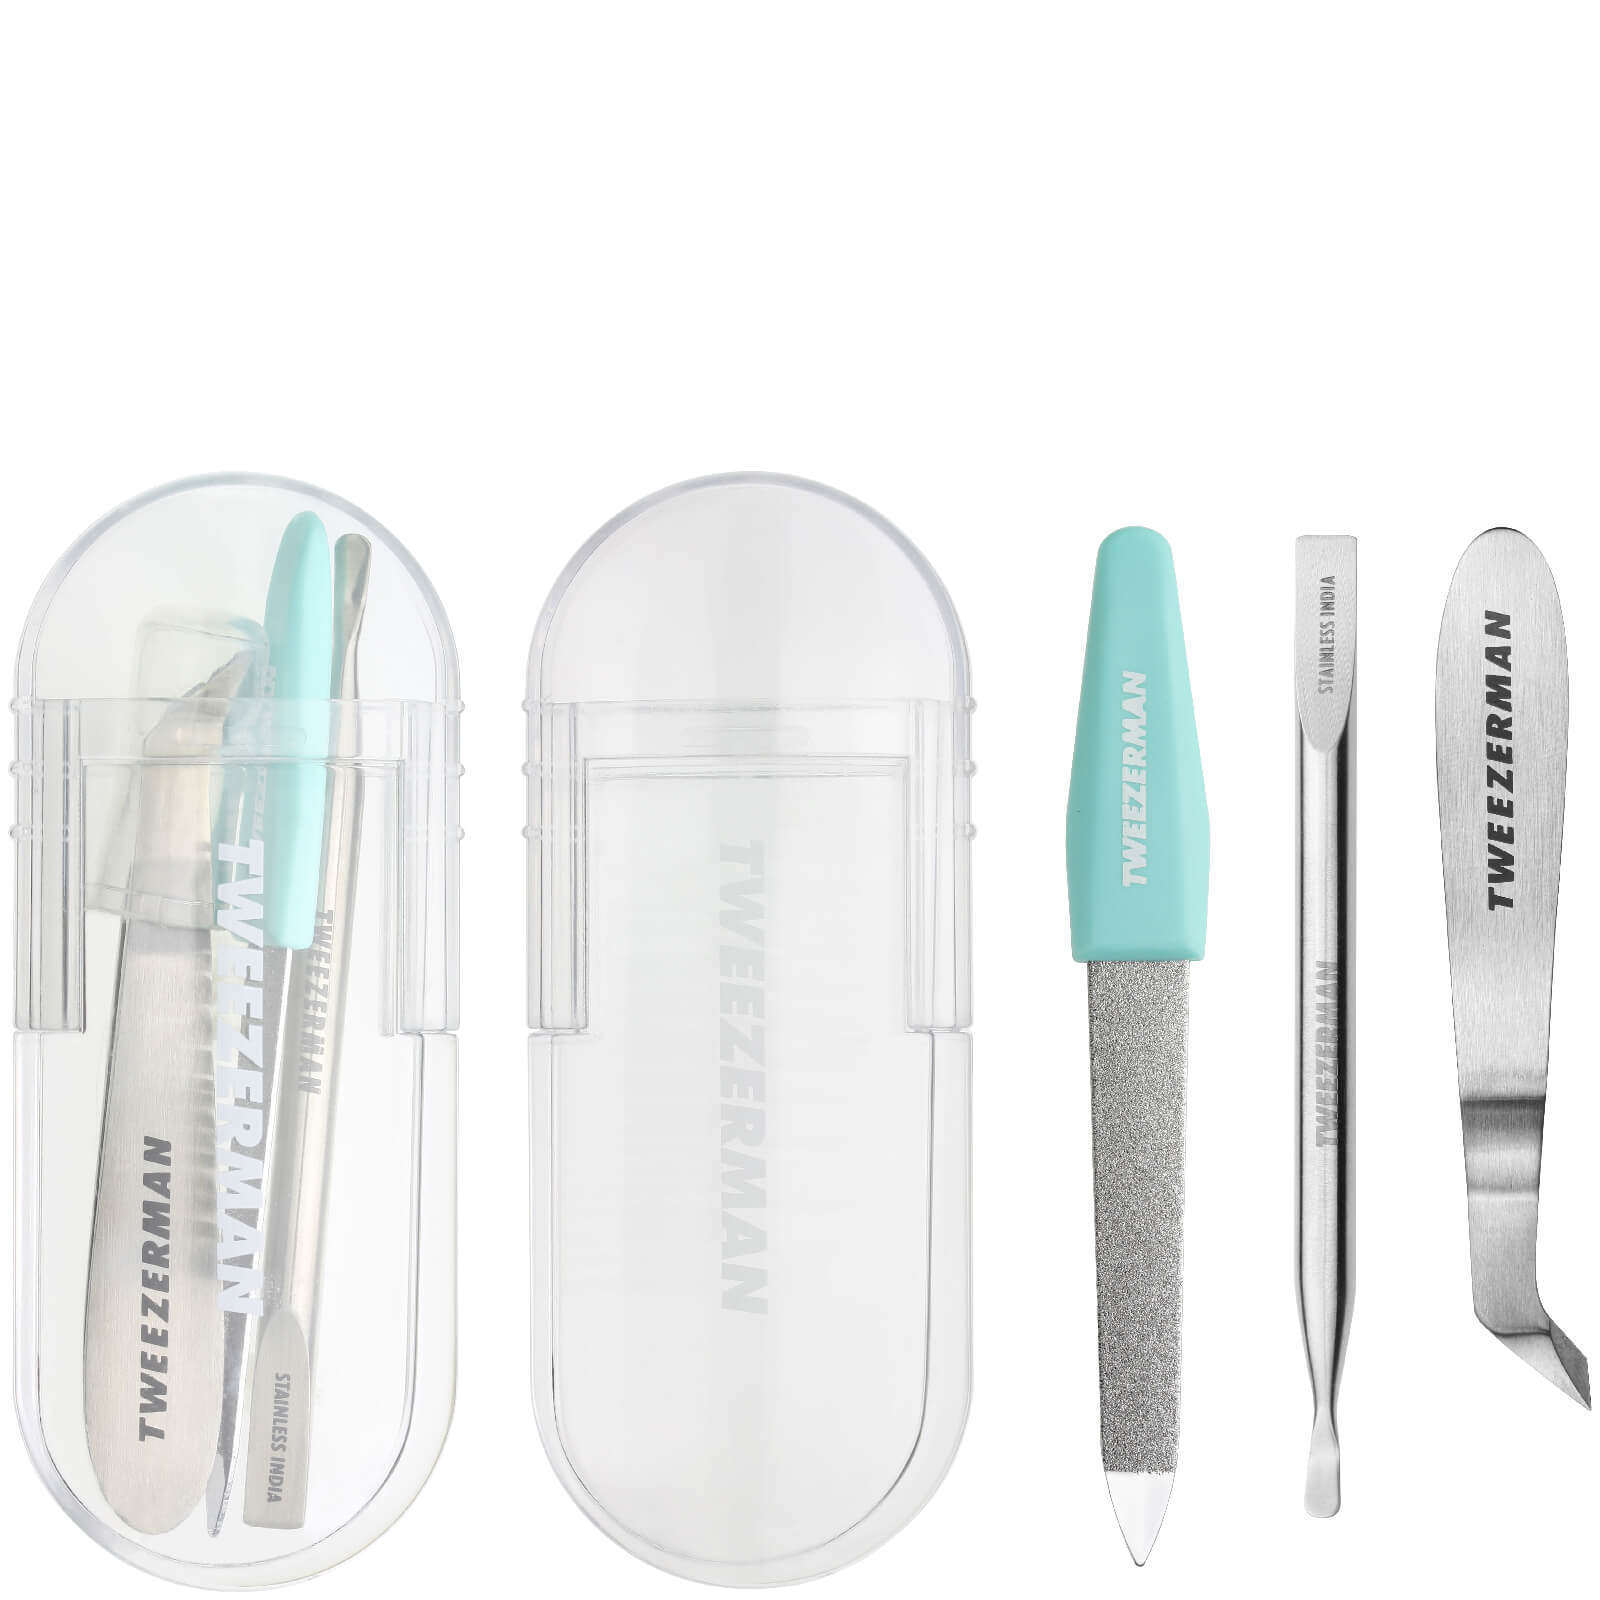 Tweezerman Nail Rescue Kit